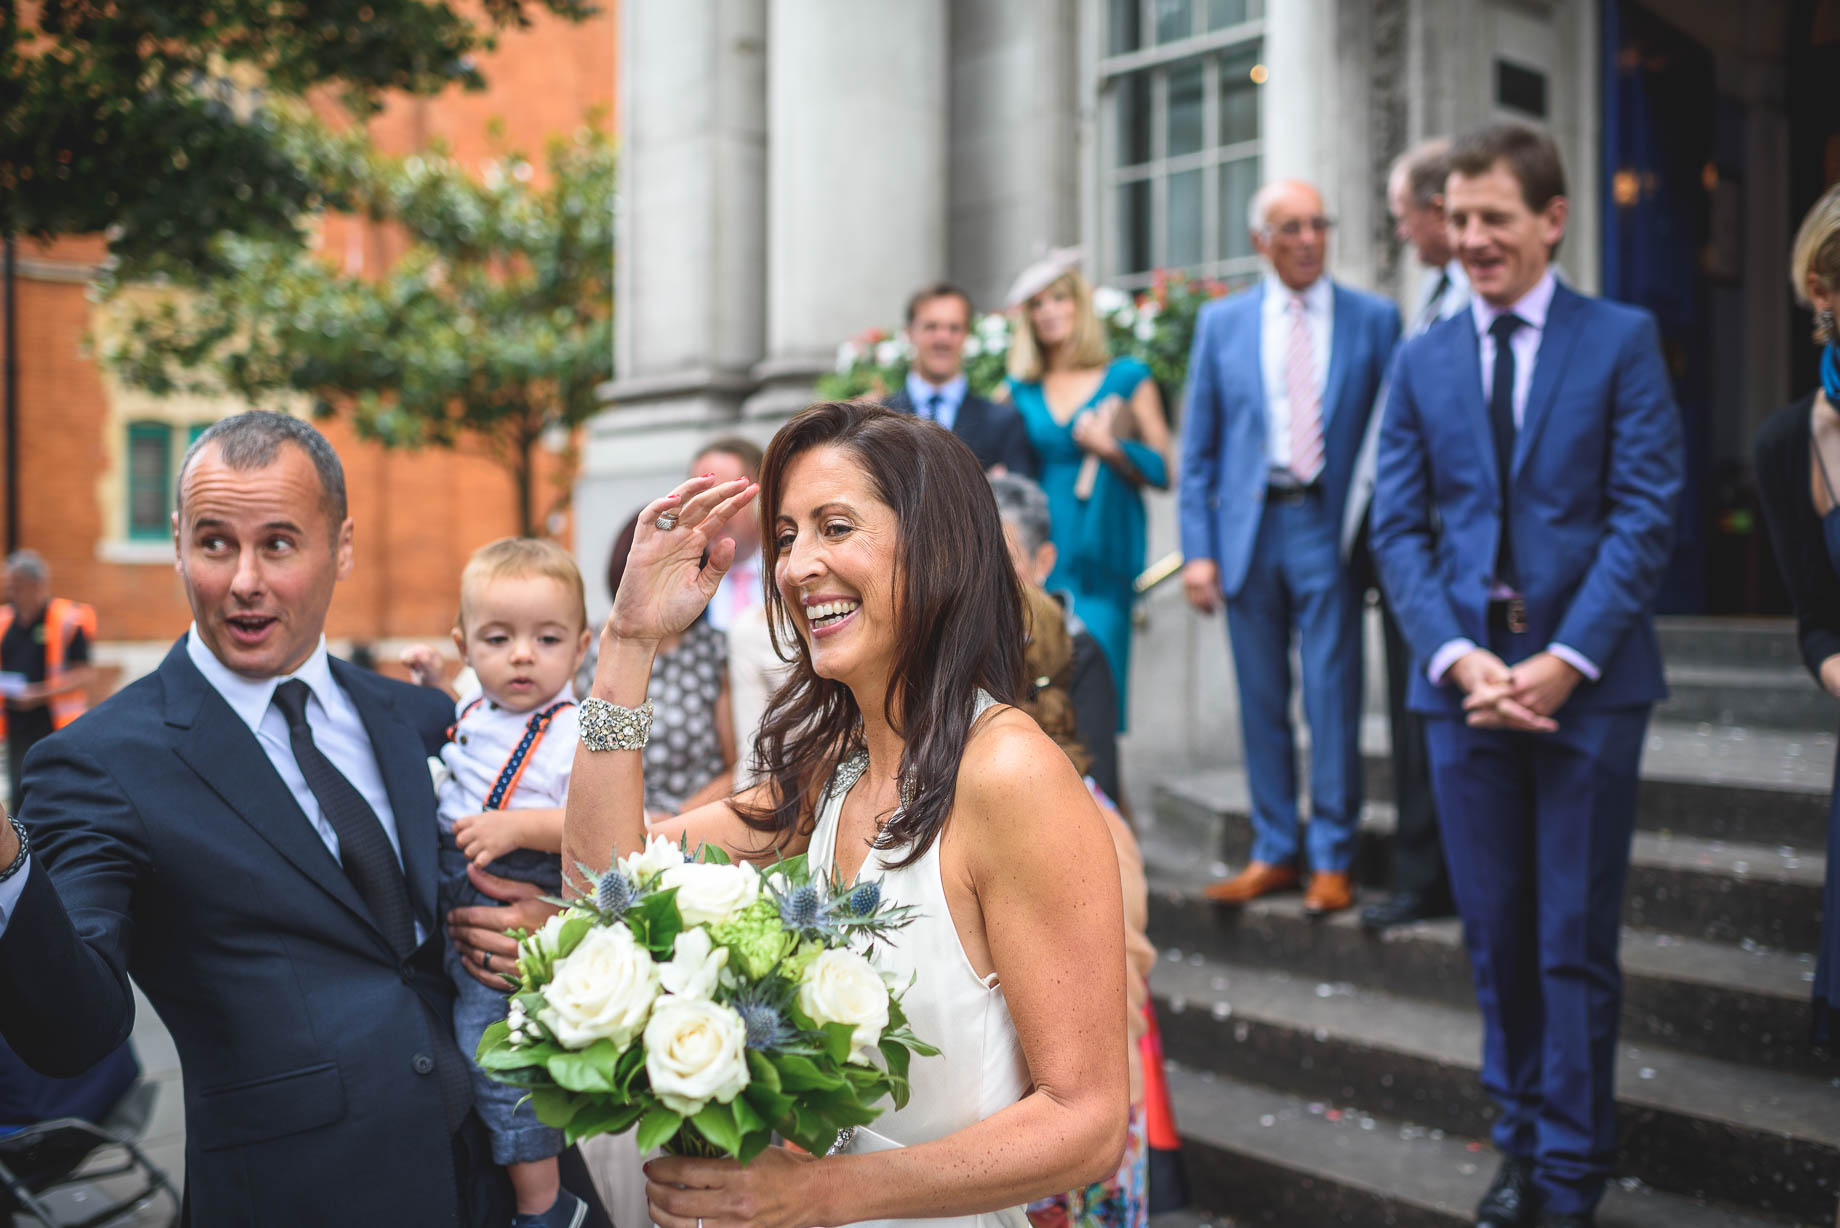 Chelsea and Mayfair wedding photography - Guy Collier - Vicki and Damien (69 of 126)